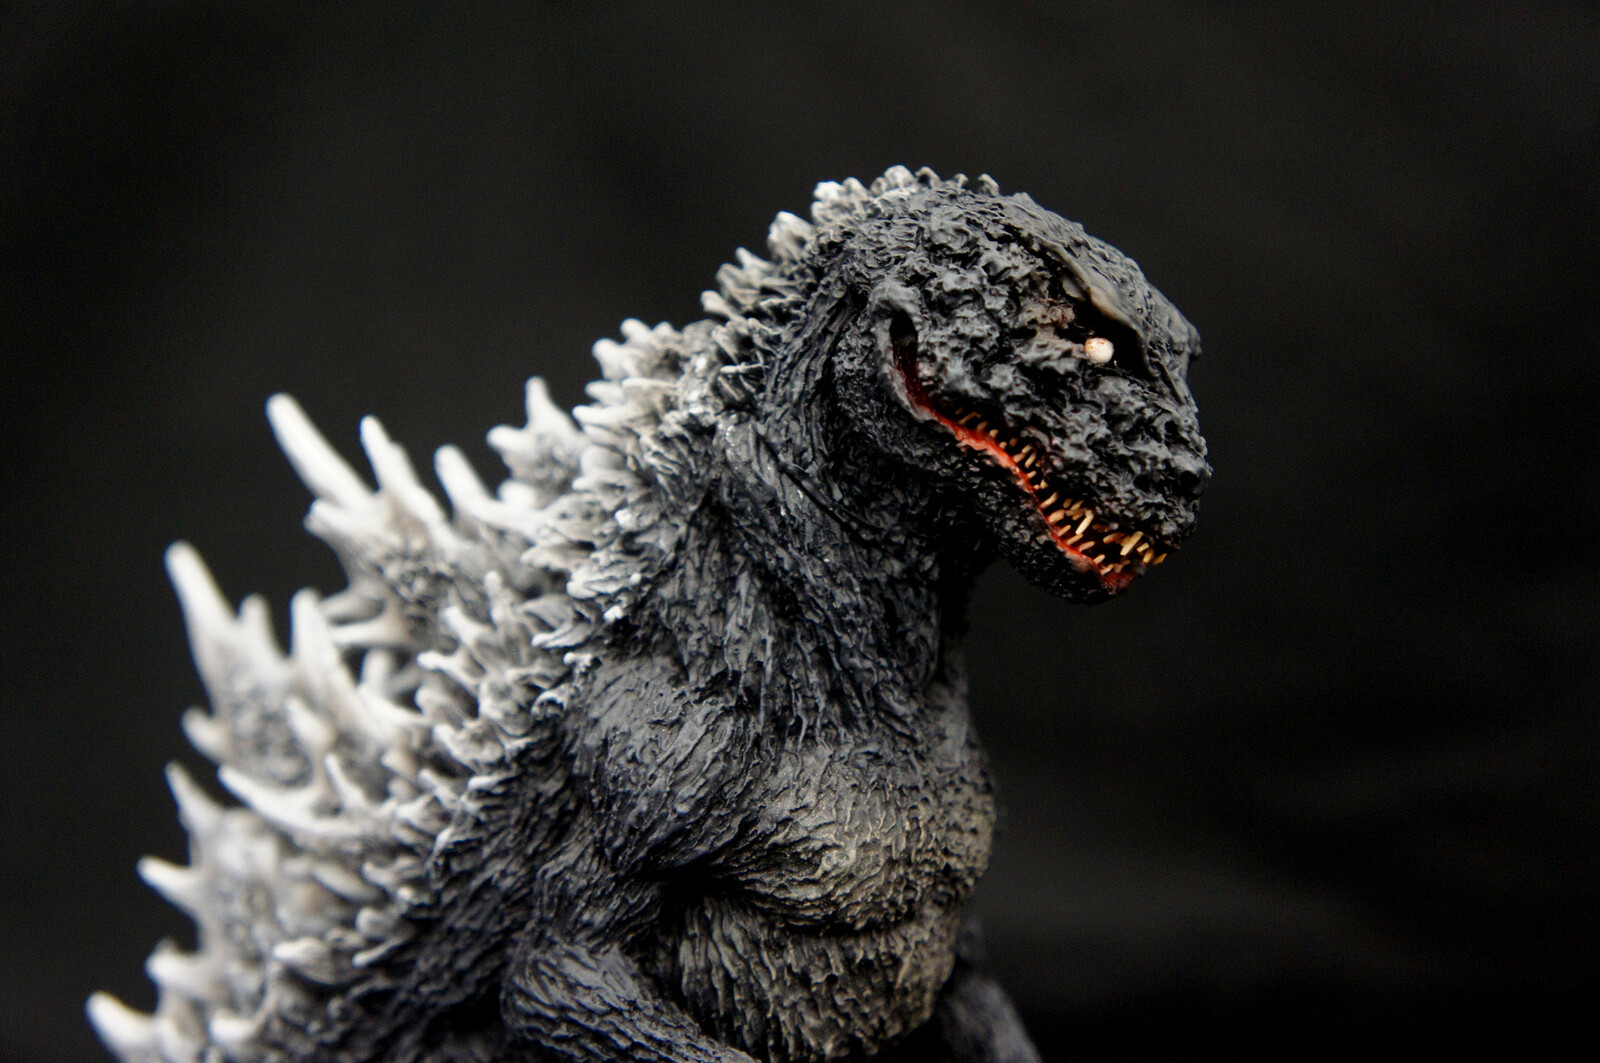 mage Version 1954 Godzilla Art Statue イメージ 初代ゴジラ